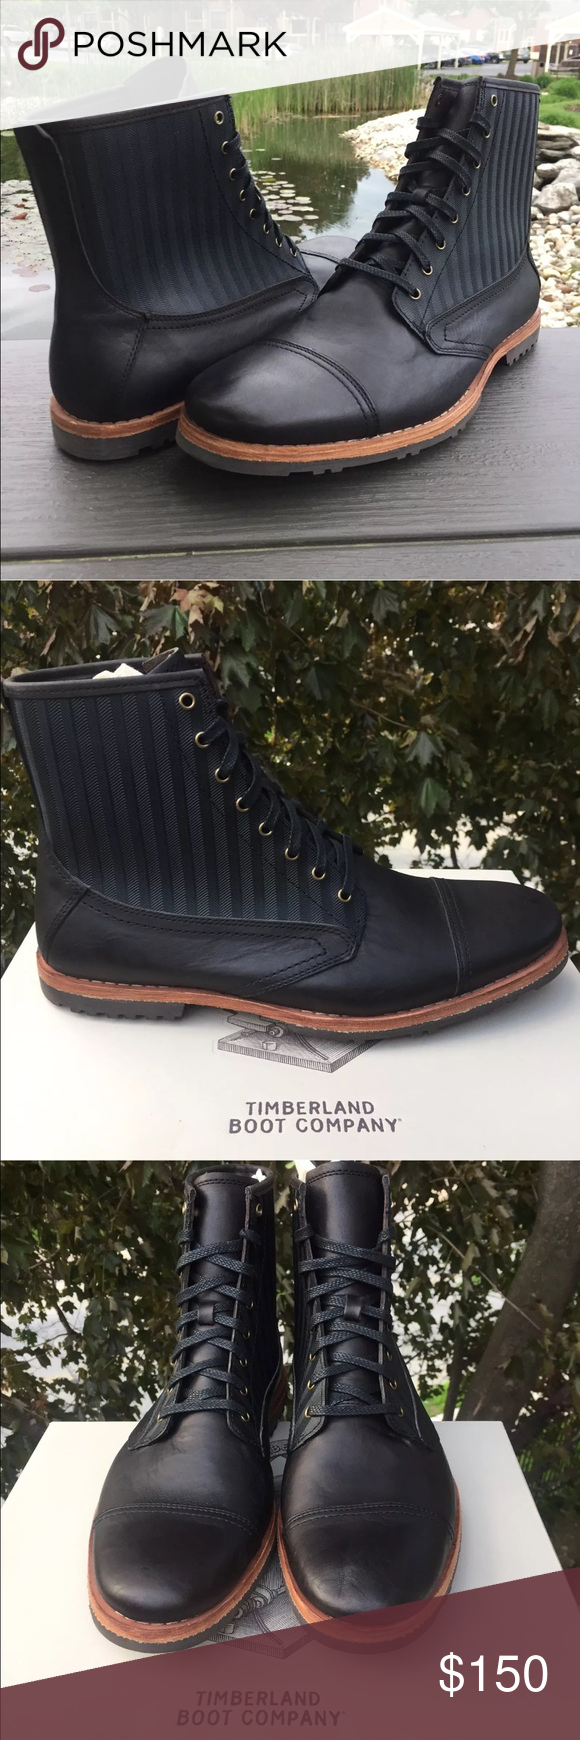 TIMBERLAND men's company boot MEN'S TIMBERLAND BOOT COMPANY